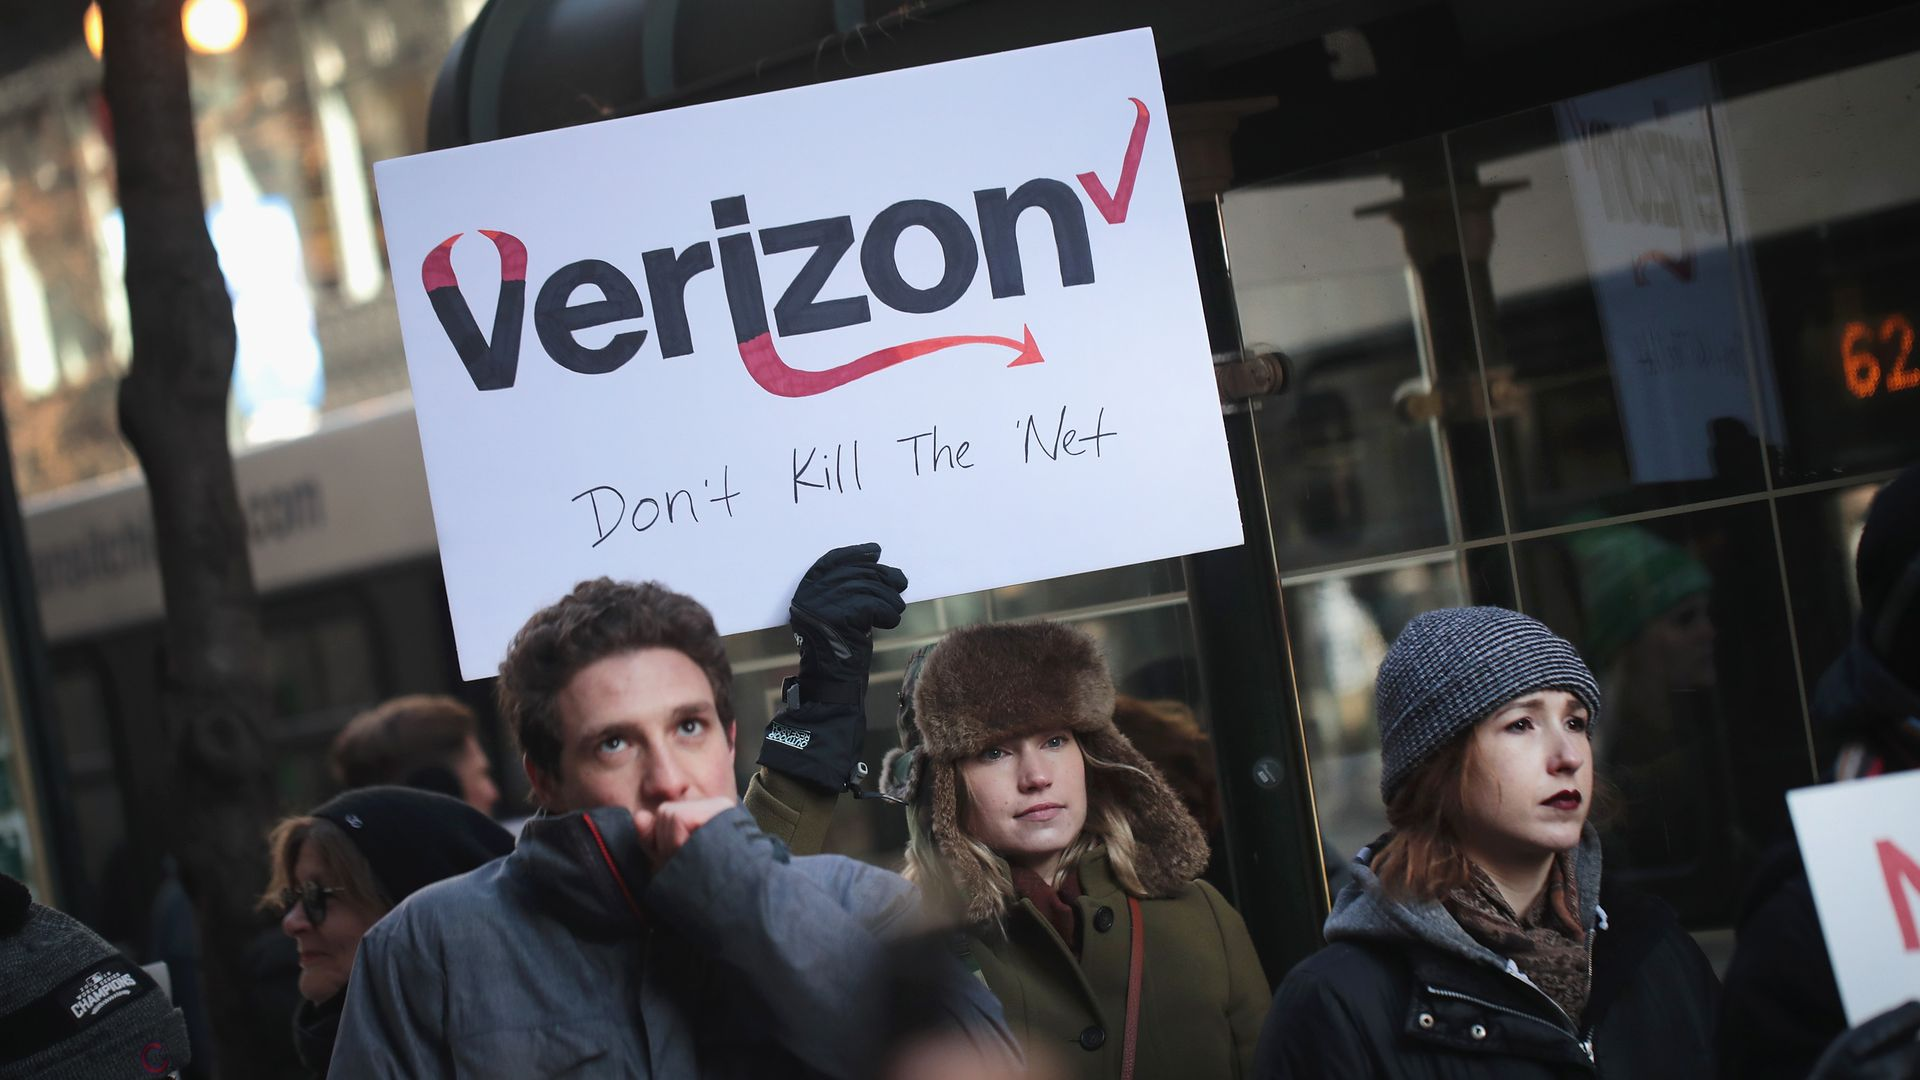 Demonstrators, supporting net neutrality, protest a plan by the FCC to repeal restrictions on internet service providers